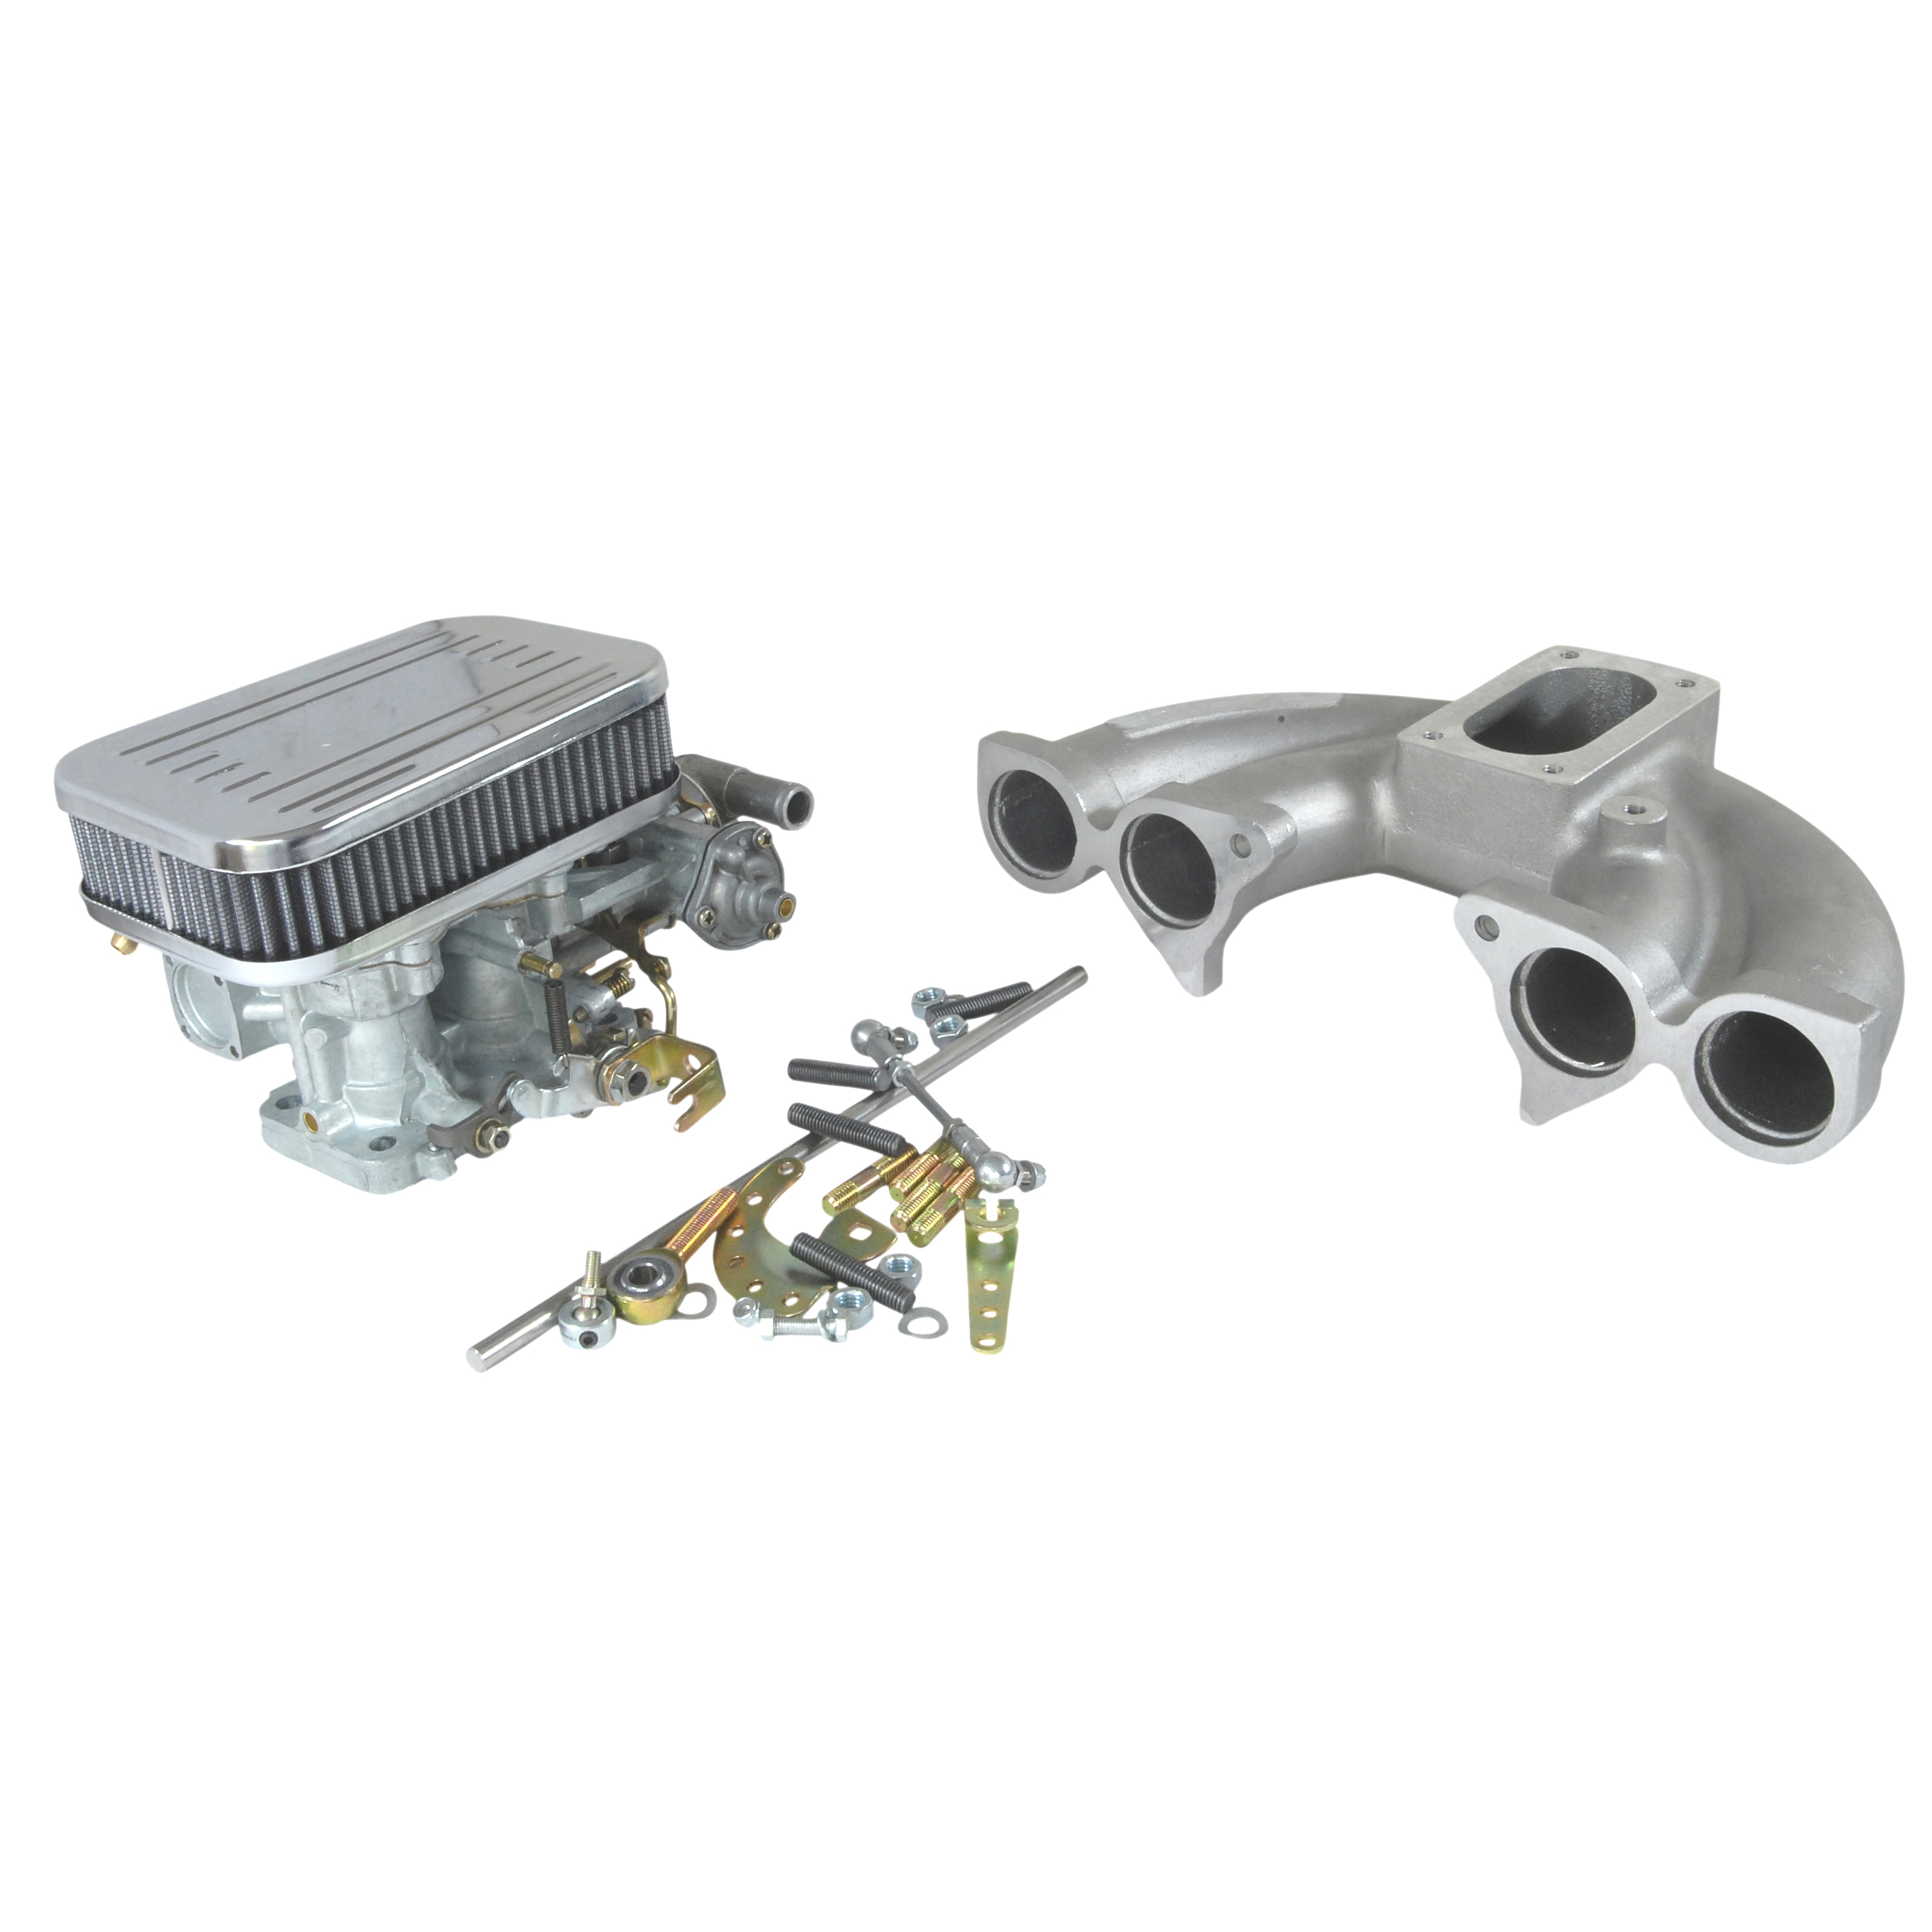 UGGEN 32 / 36 DGAV CARB KIT VOLVO B18 / B20 ENGINE 120 / 140 / 240 / 440 / 460 / 480 / P1800 / AMAZON